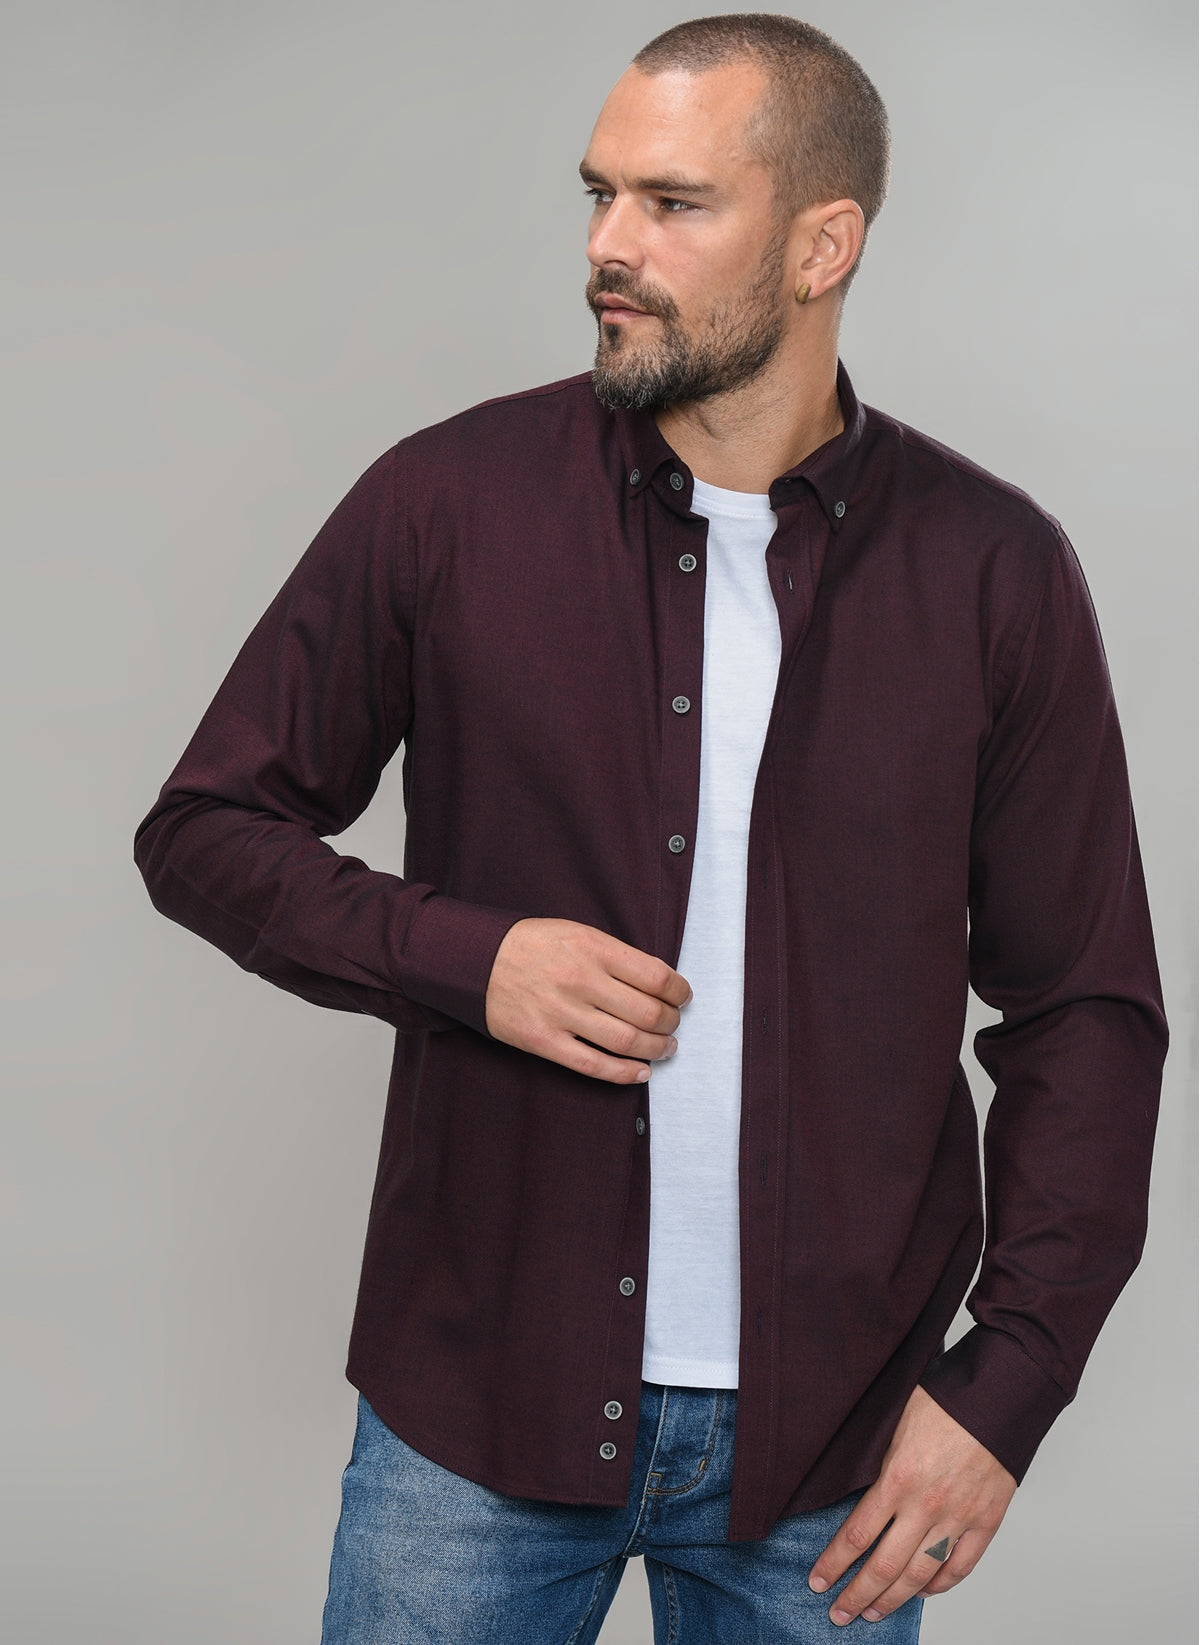 Solid Button-Down Shirt in Burgundy